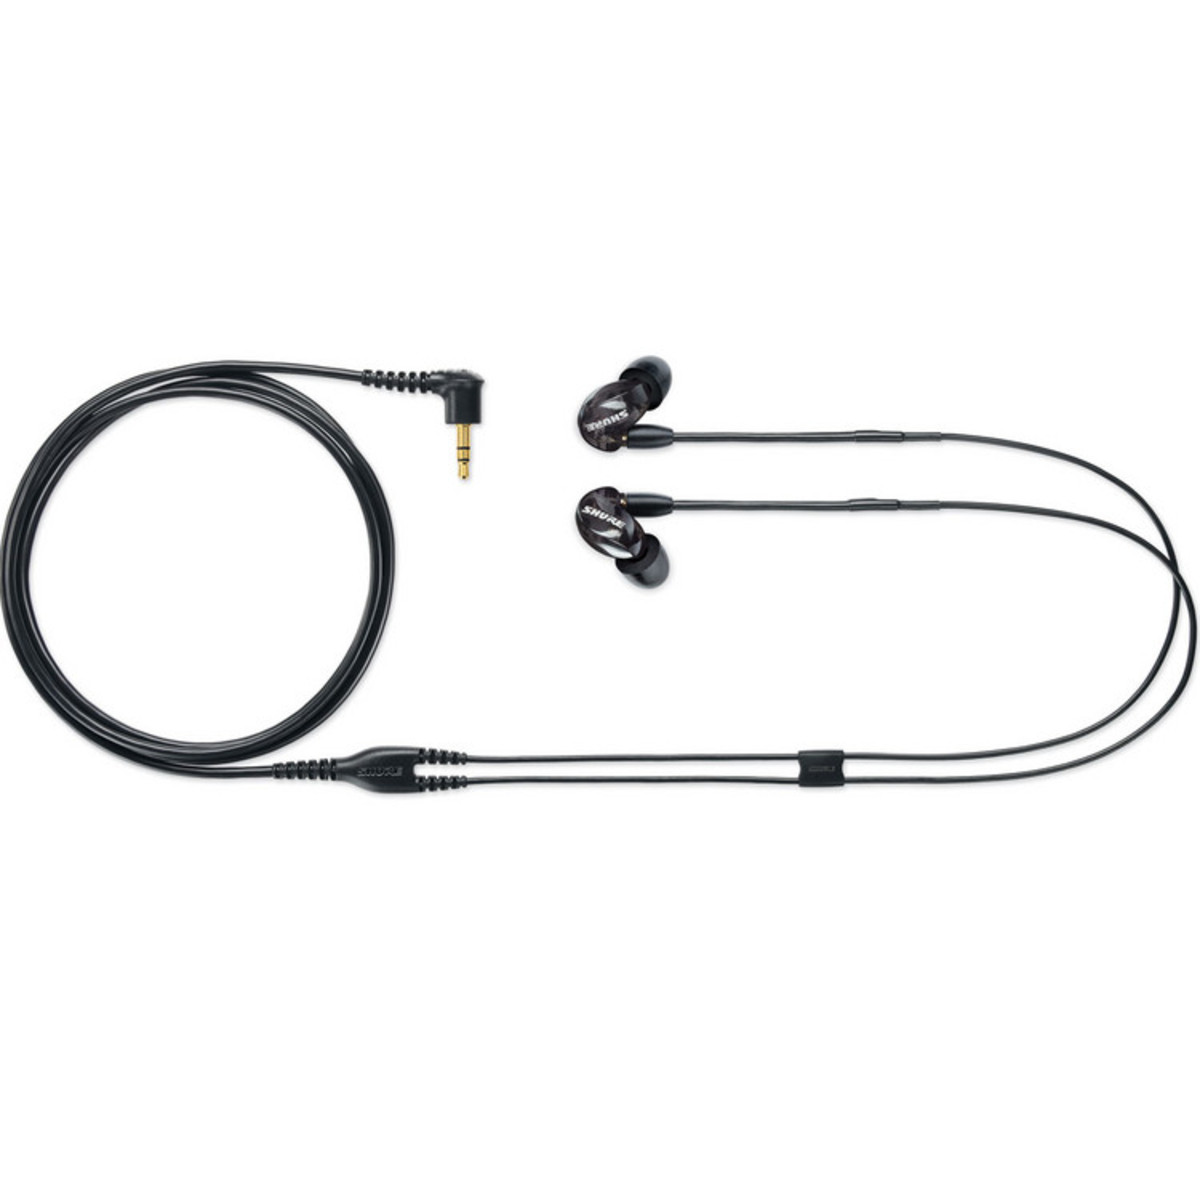 Shure Se215 Sound Isolation Earphones Black At Gear4music